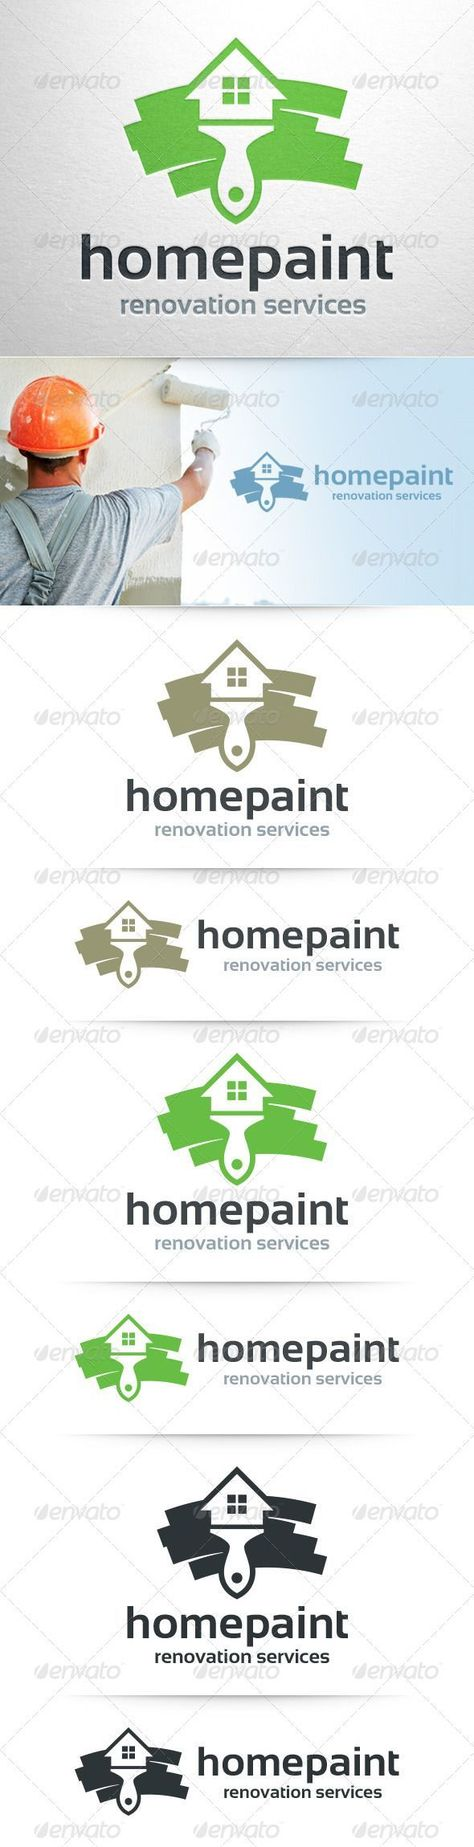 Home Painter  - Logo Design Template Vector #logotype Download it here: graphicr... -  - #design #Download #graphicr #Home #Logo #logotype #Painter #Template #Vector